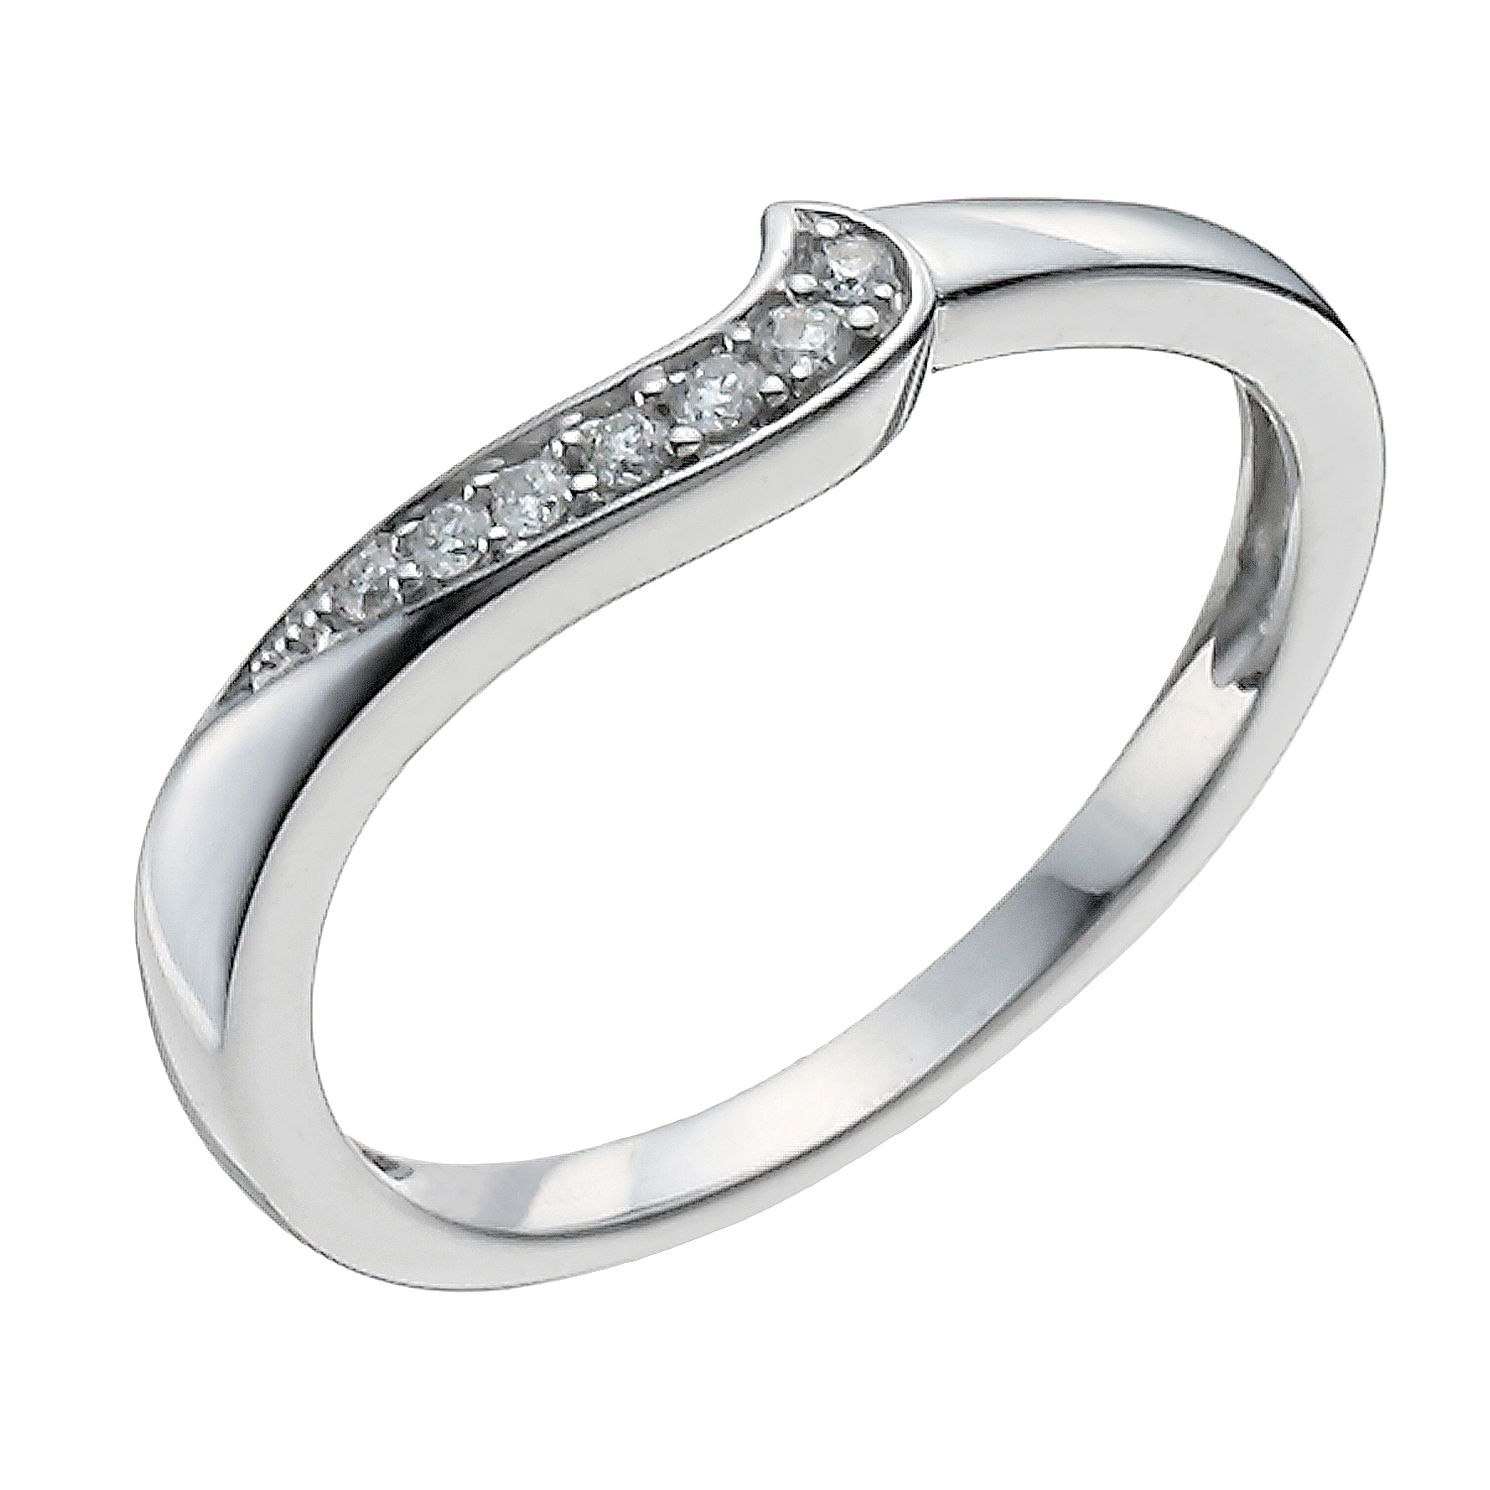 9ct White Gold Shaped Diamond Ring   Product Number 9962530